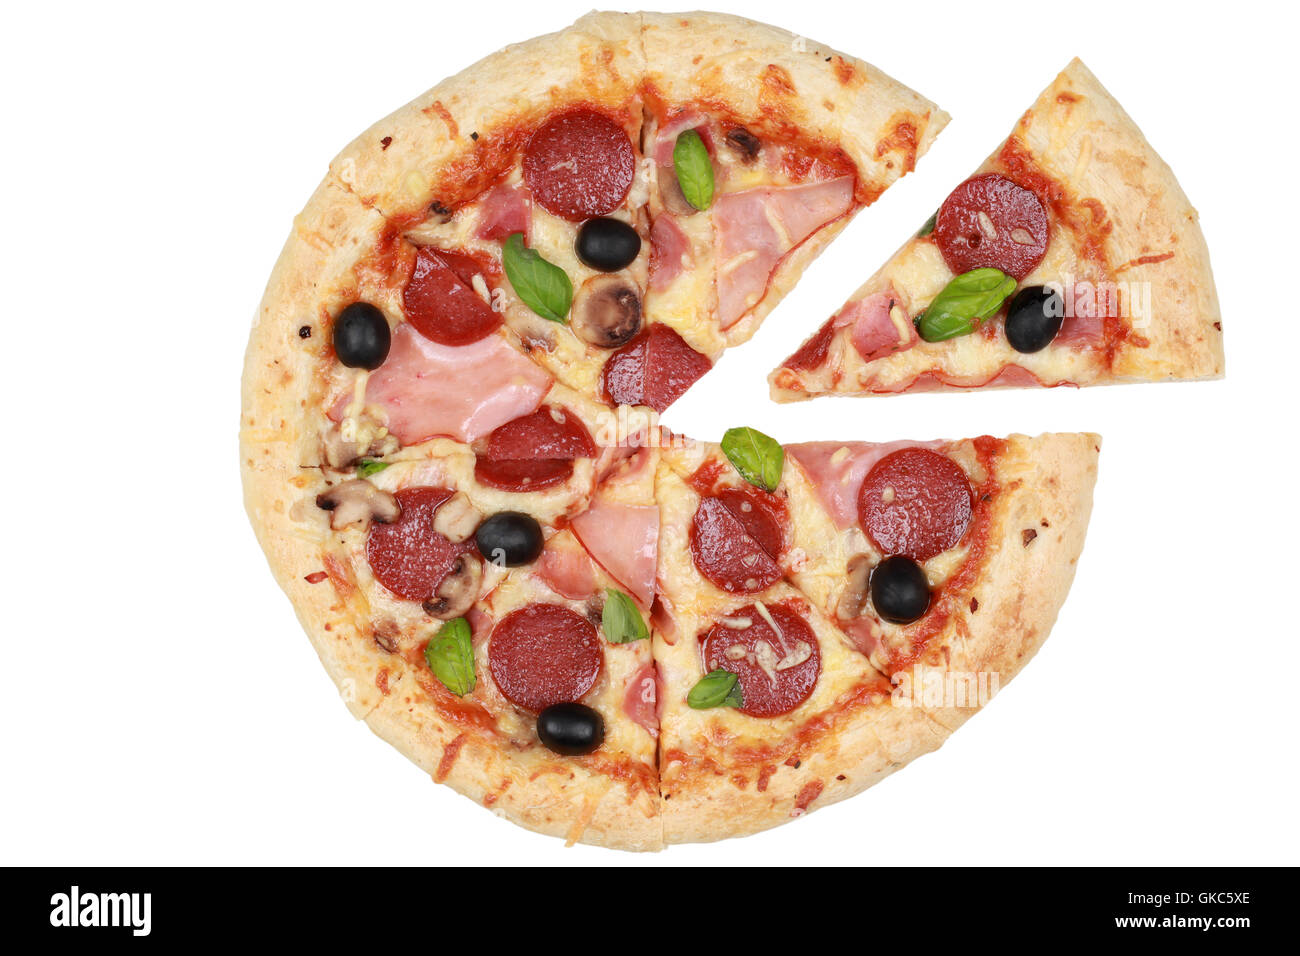 sliced pizza with salami,ham and mushrooms - Stock Image